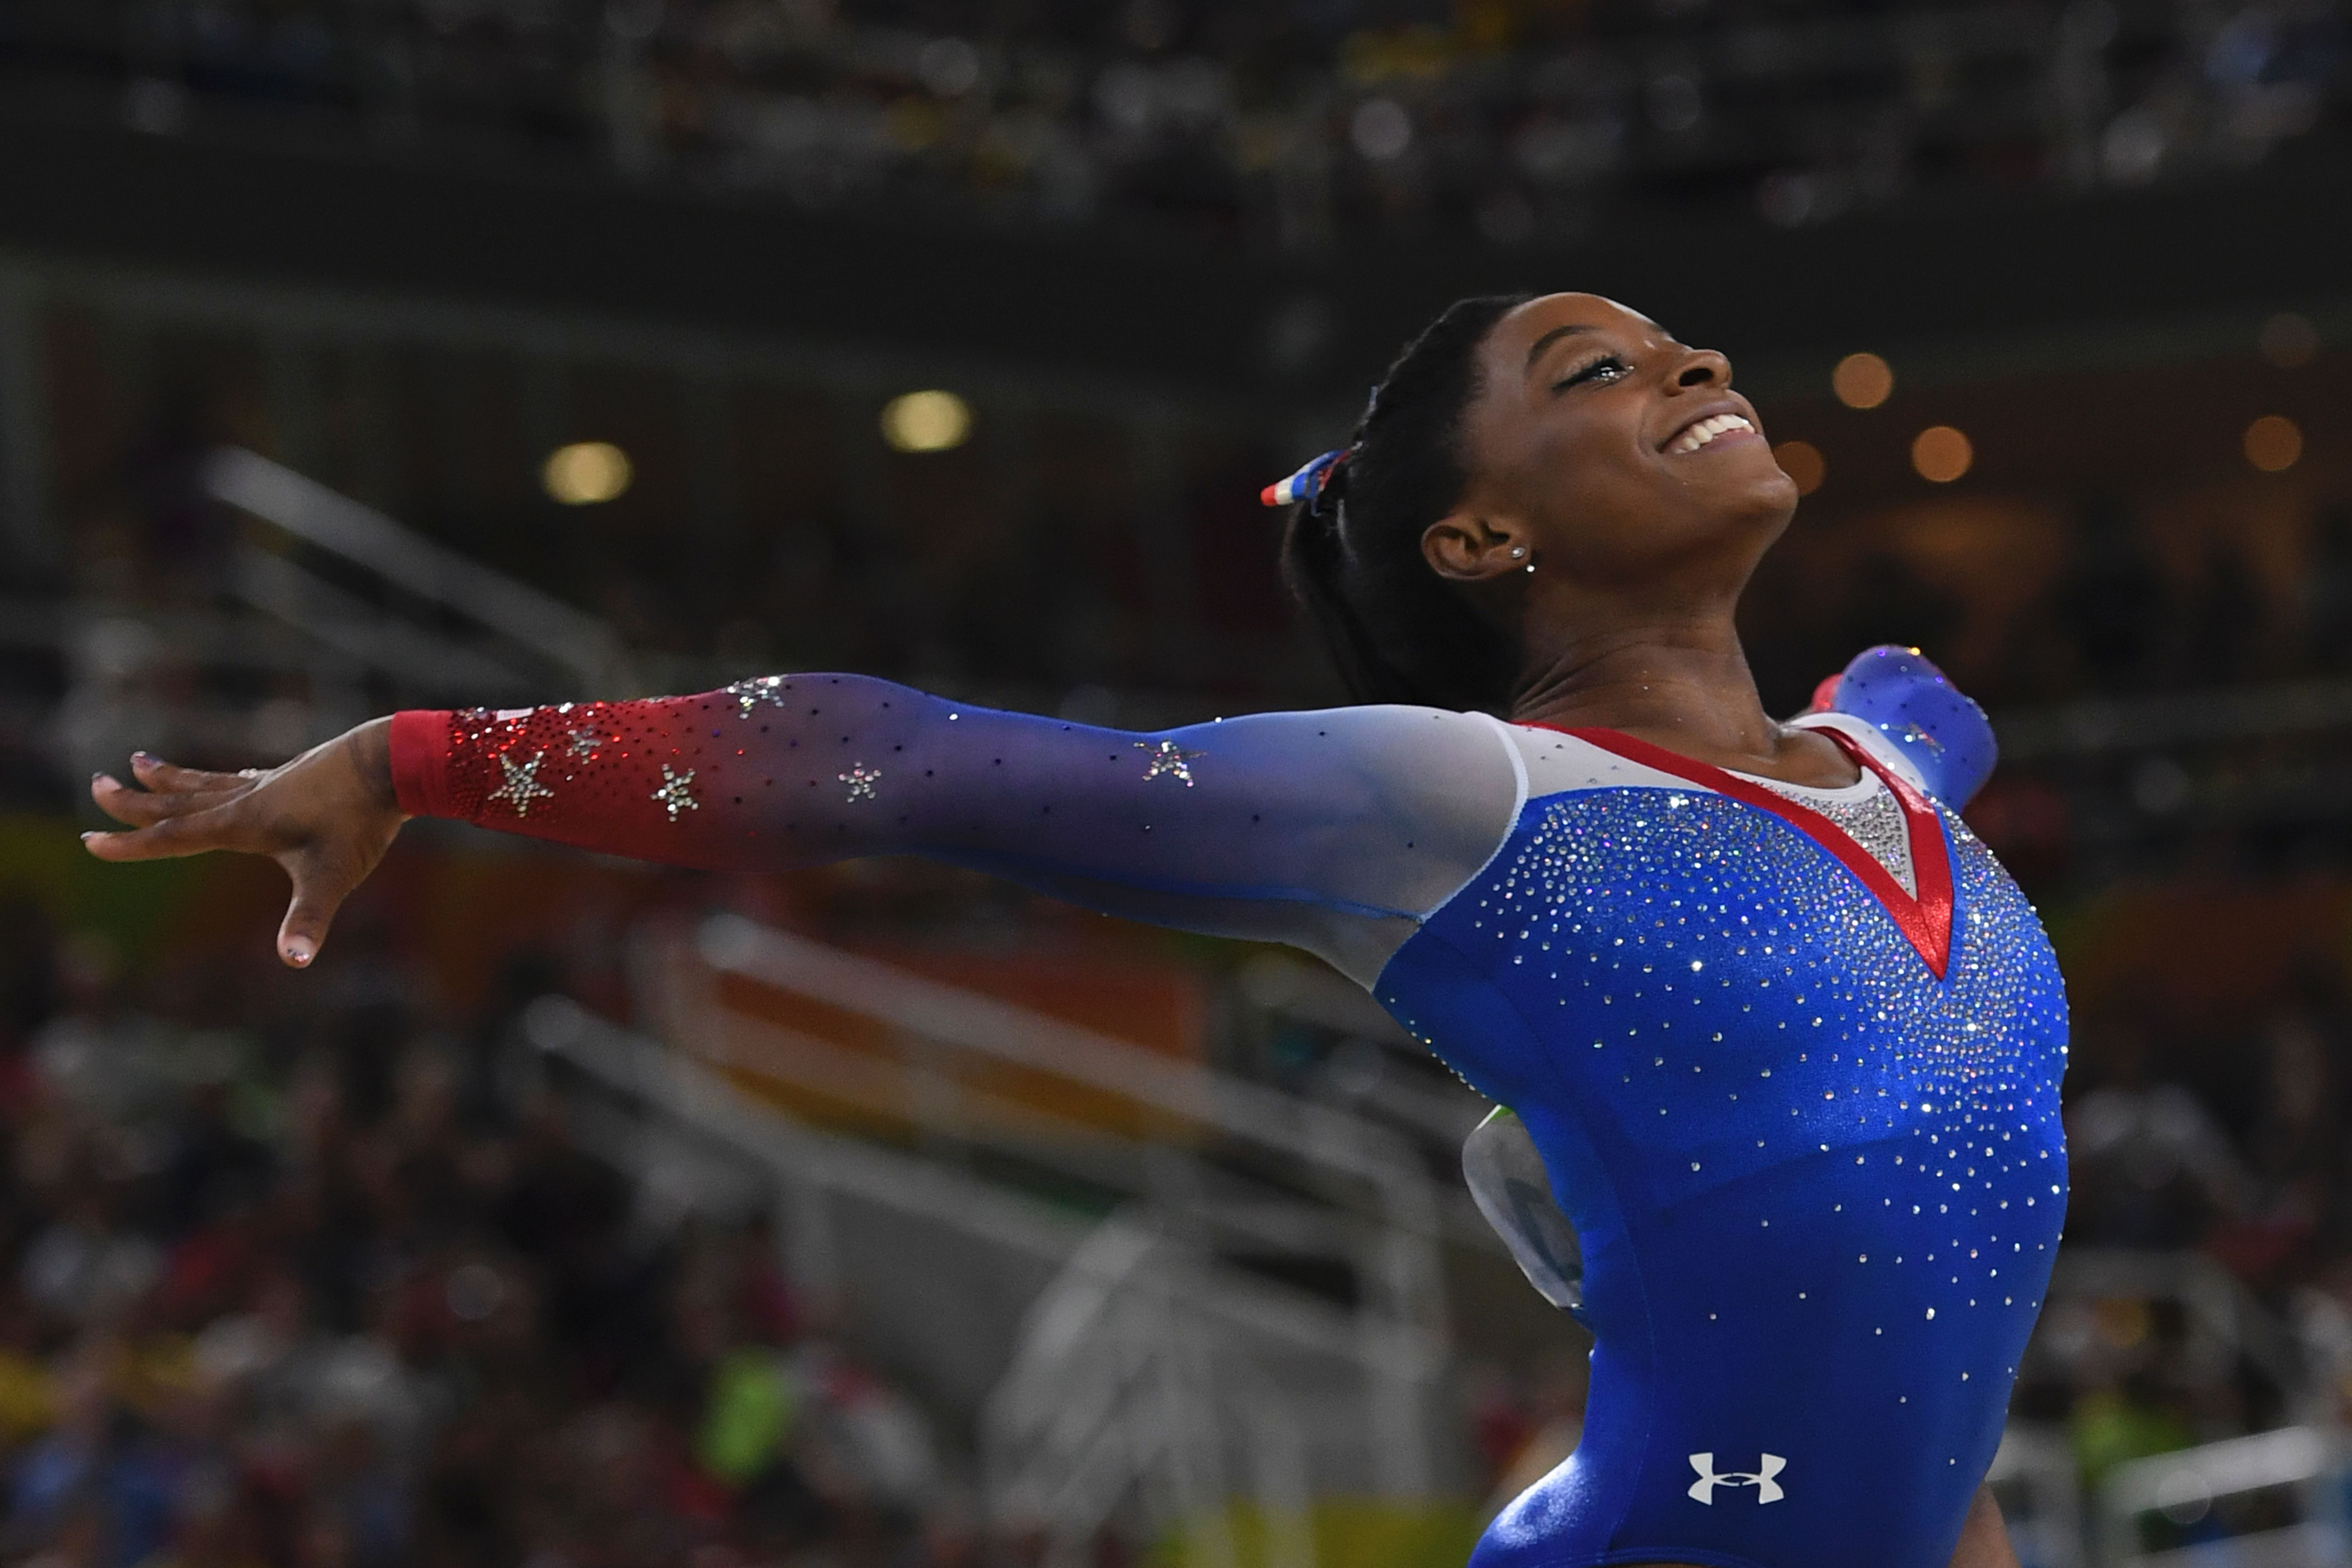 U.S. gymnast Simone Biles competes in the women's floor event final of the Artistic Gymnastics at the Olympic Arena during the Rio 2016 Olympic Games in Rio de Janeiro on August 16, 2016.